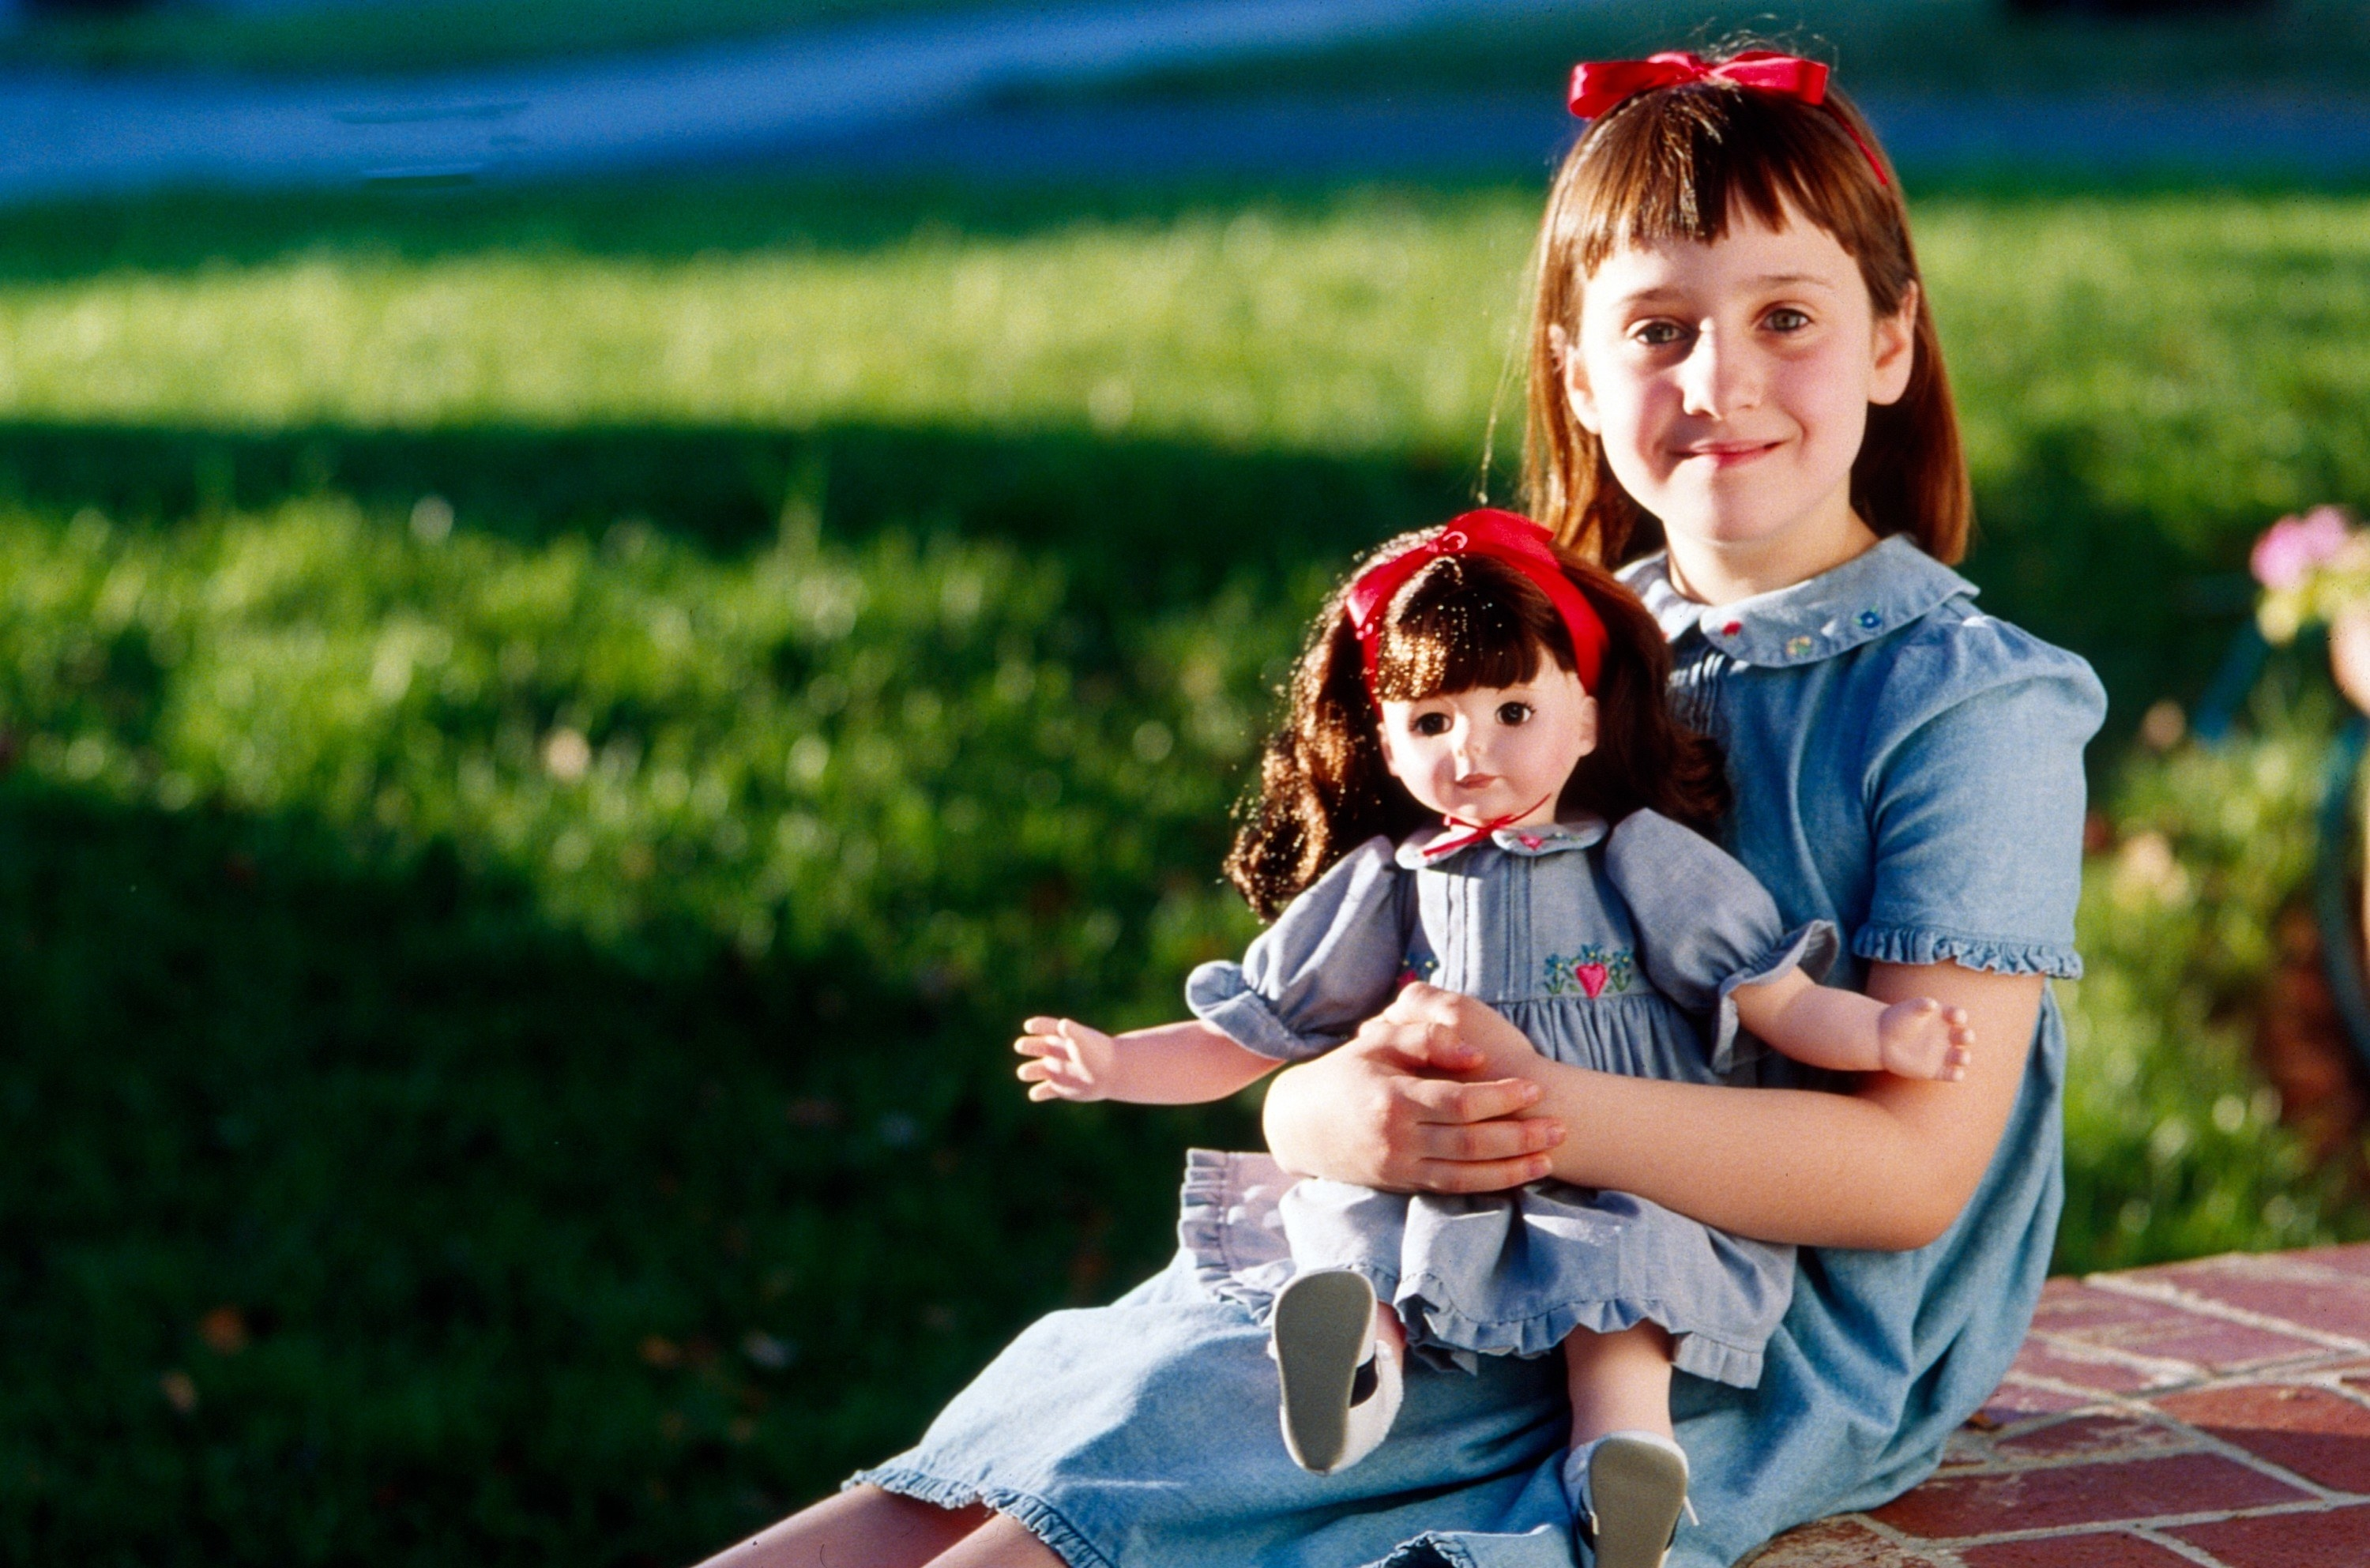 Matilda holding a doll that is dressed like her